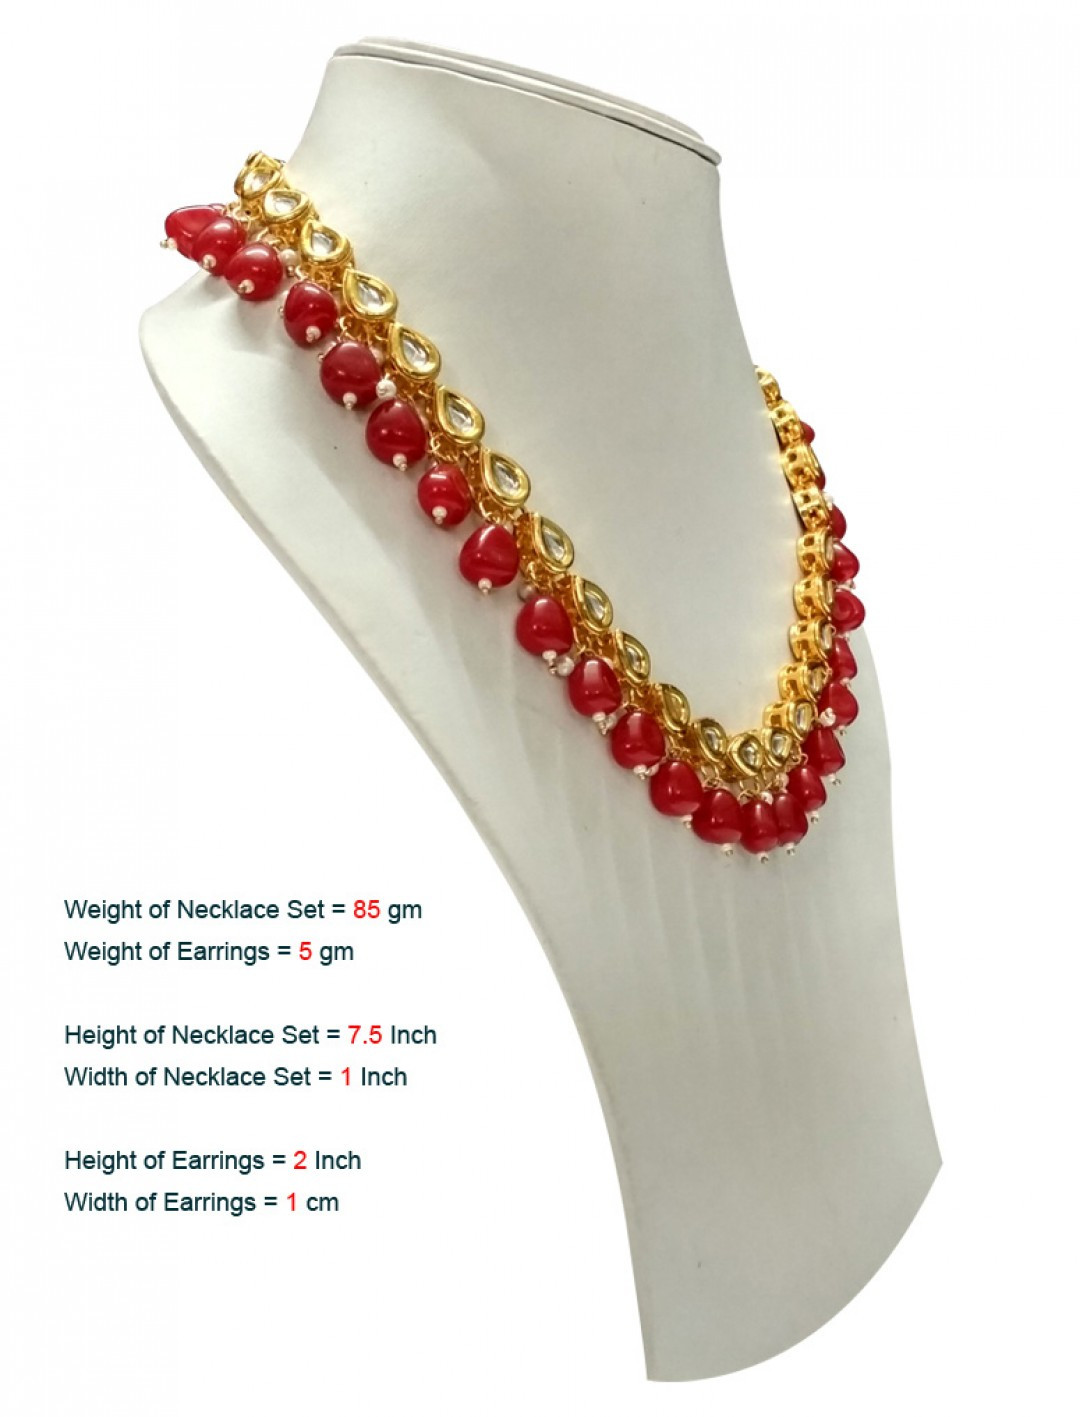 HM Necklace Set With Earrings Kundan Stone Gold Tone Red Color Beads For Woman & Girls